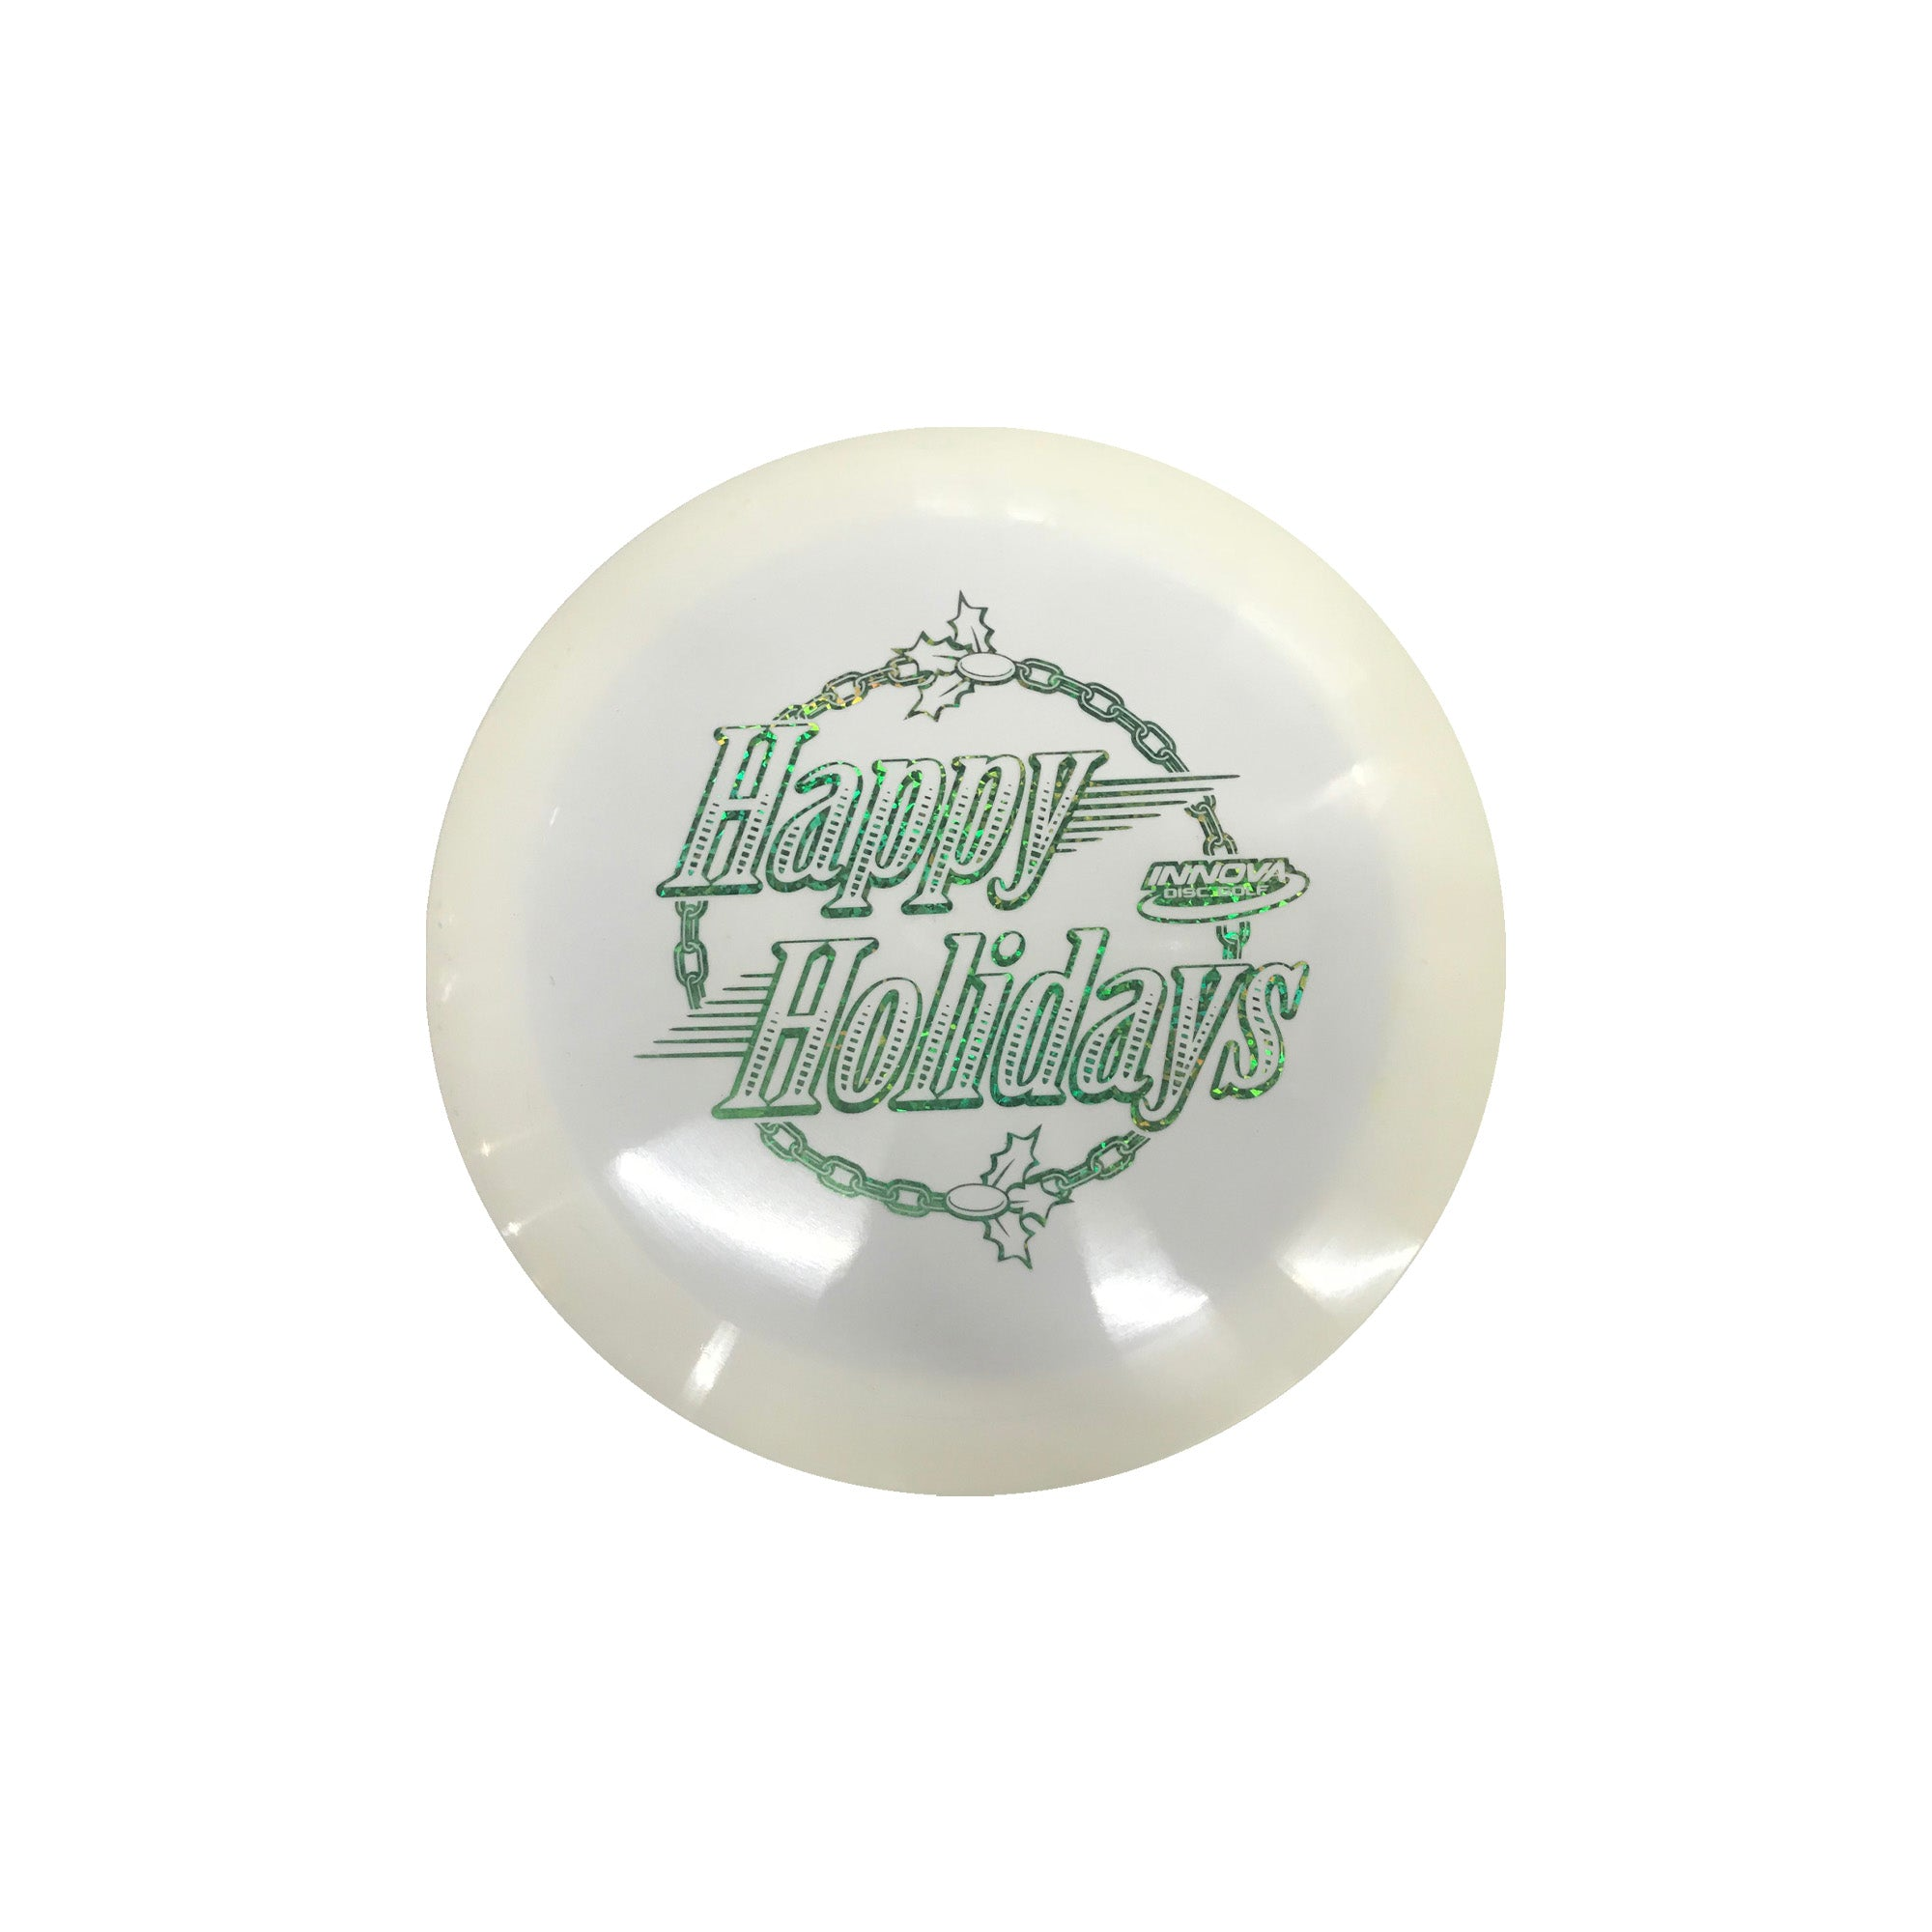 Innova Star Firestorm Holiday Golf DiscInnova Star Firestorm Holiday Golf Disc Green/White